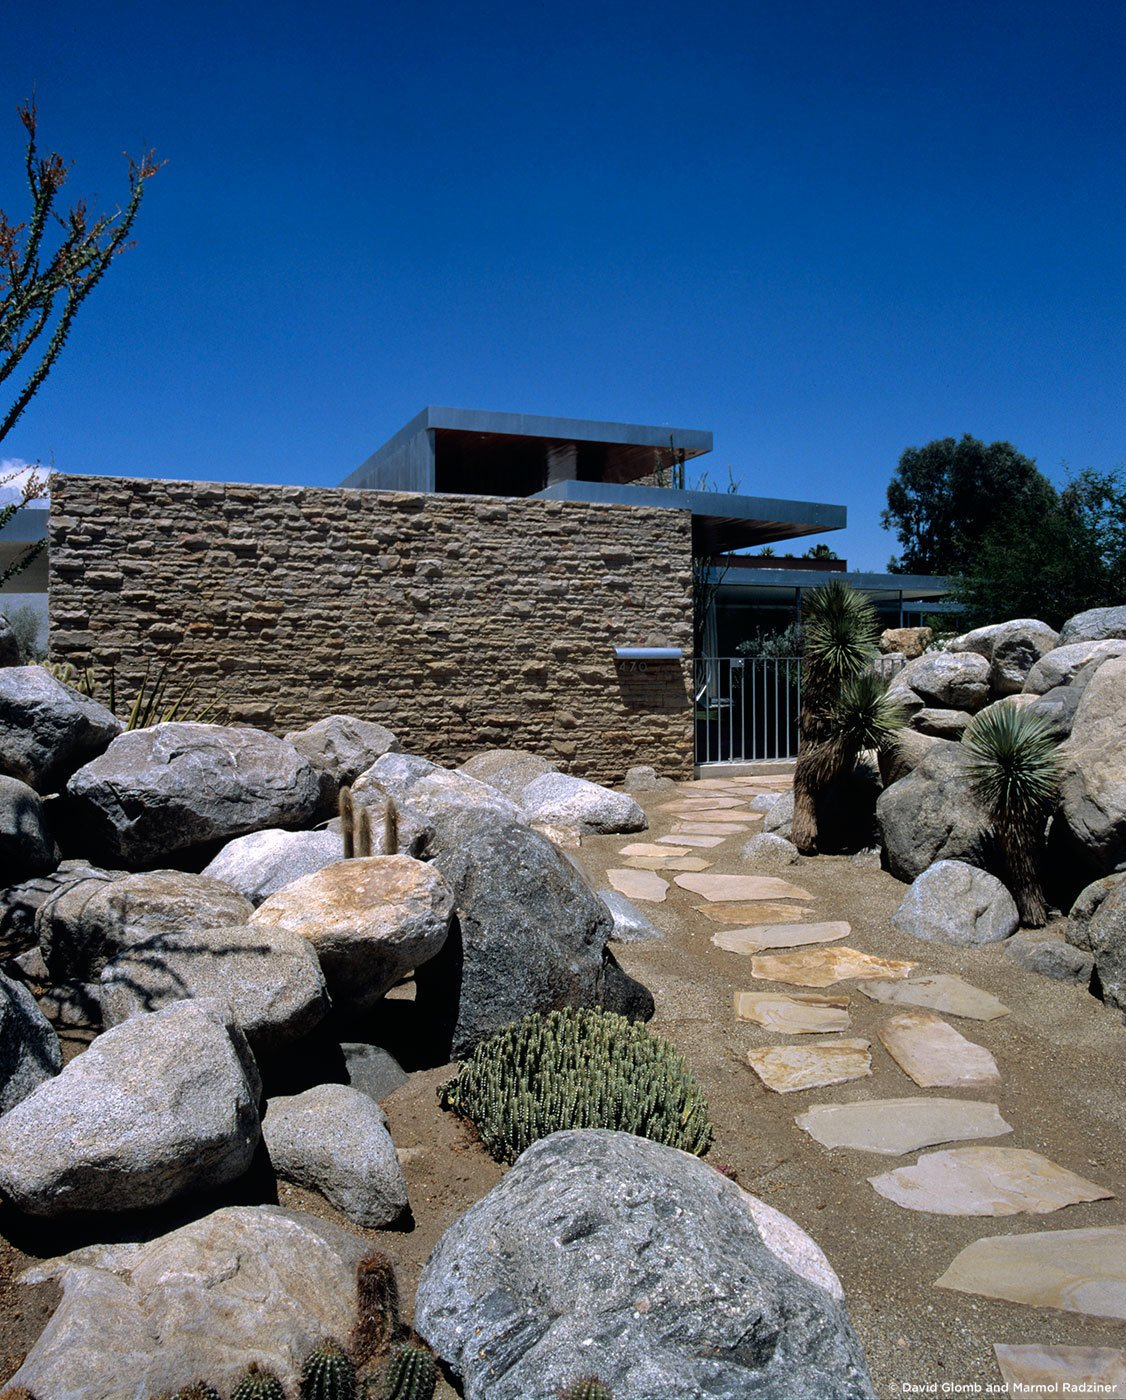 #KaufmannHouse #modern #midcentury #Nuetra #1946 #restoration #archival #original #details #lighting #windows #exterior #outside #outdoors #landscape #pathway #stone #rock #PalmSprings #California #MarmolRadziner   Kaufmann House